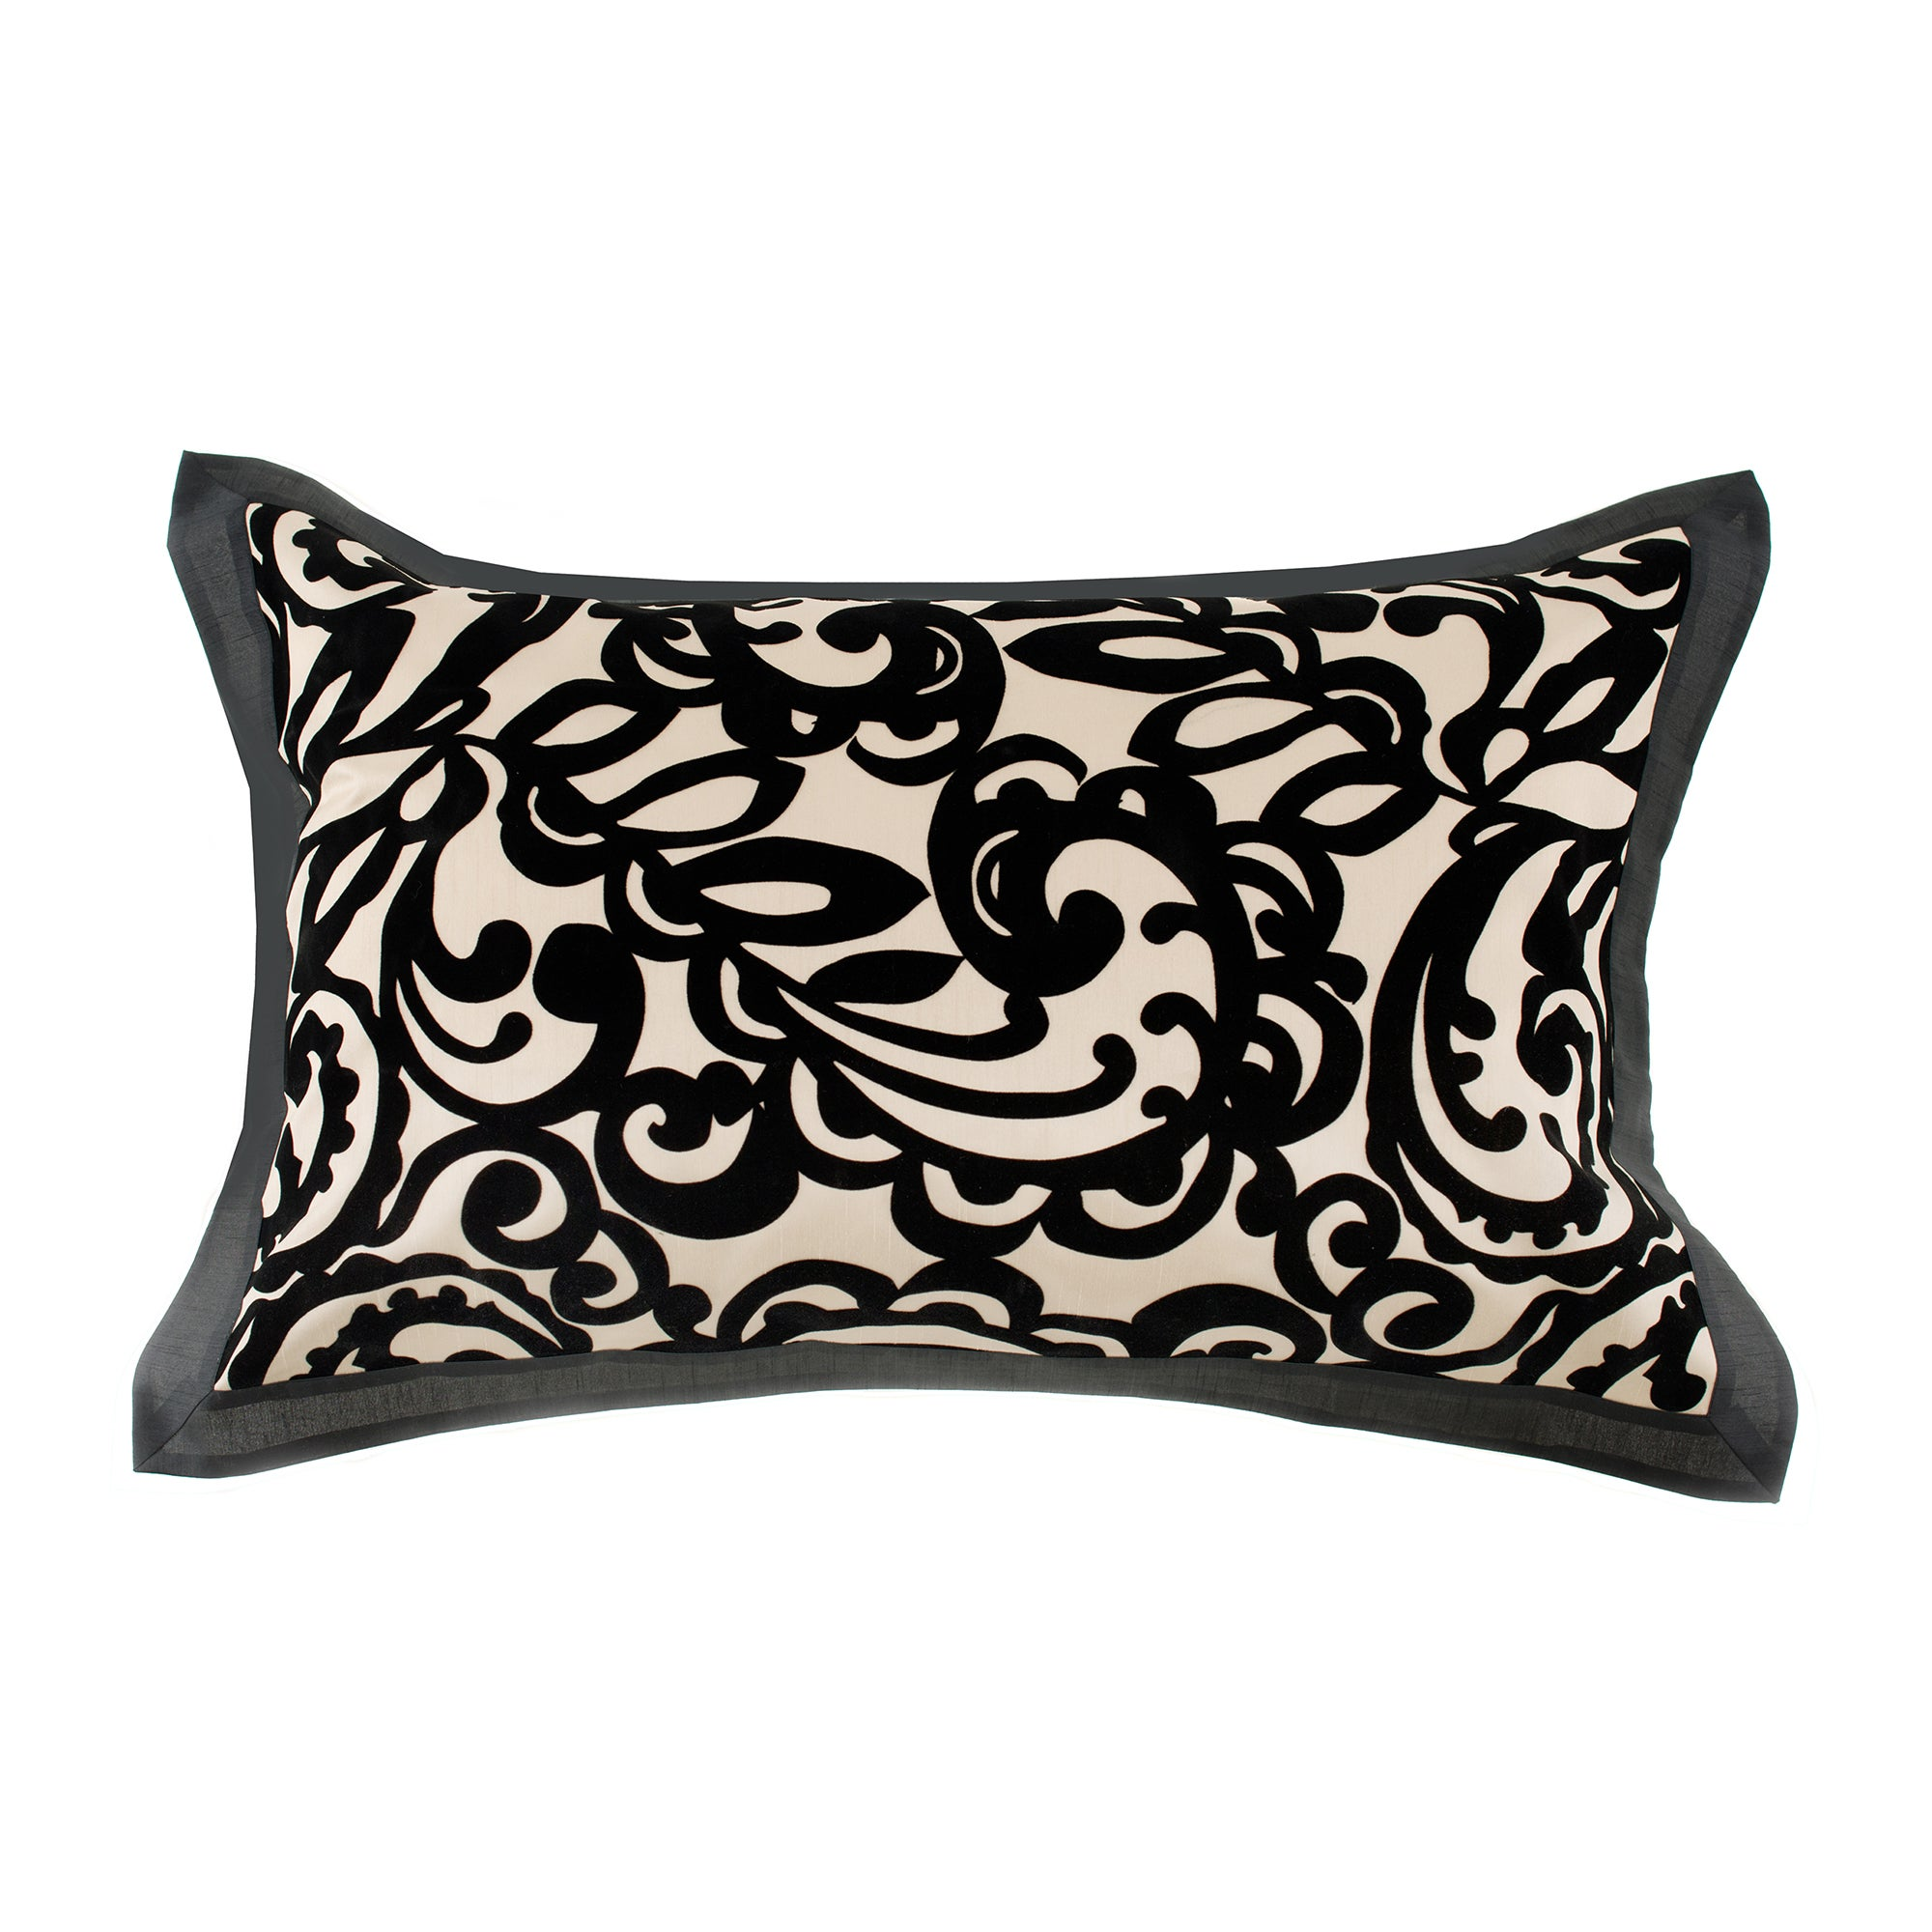 Black Baroque Flocked Oxford Pillowcase